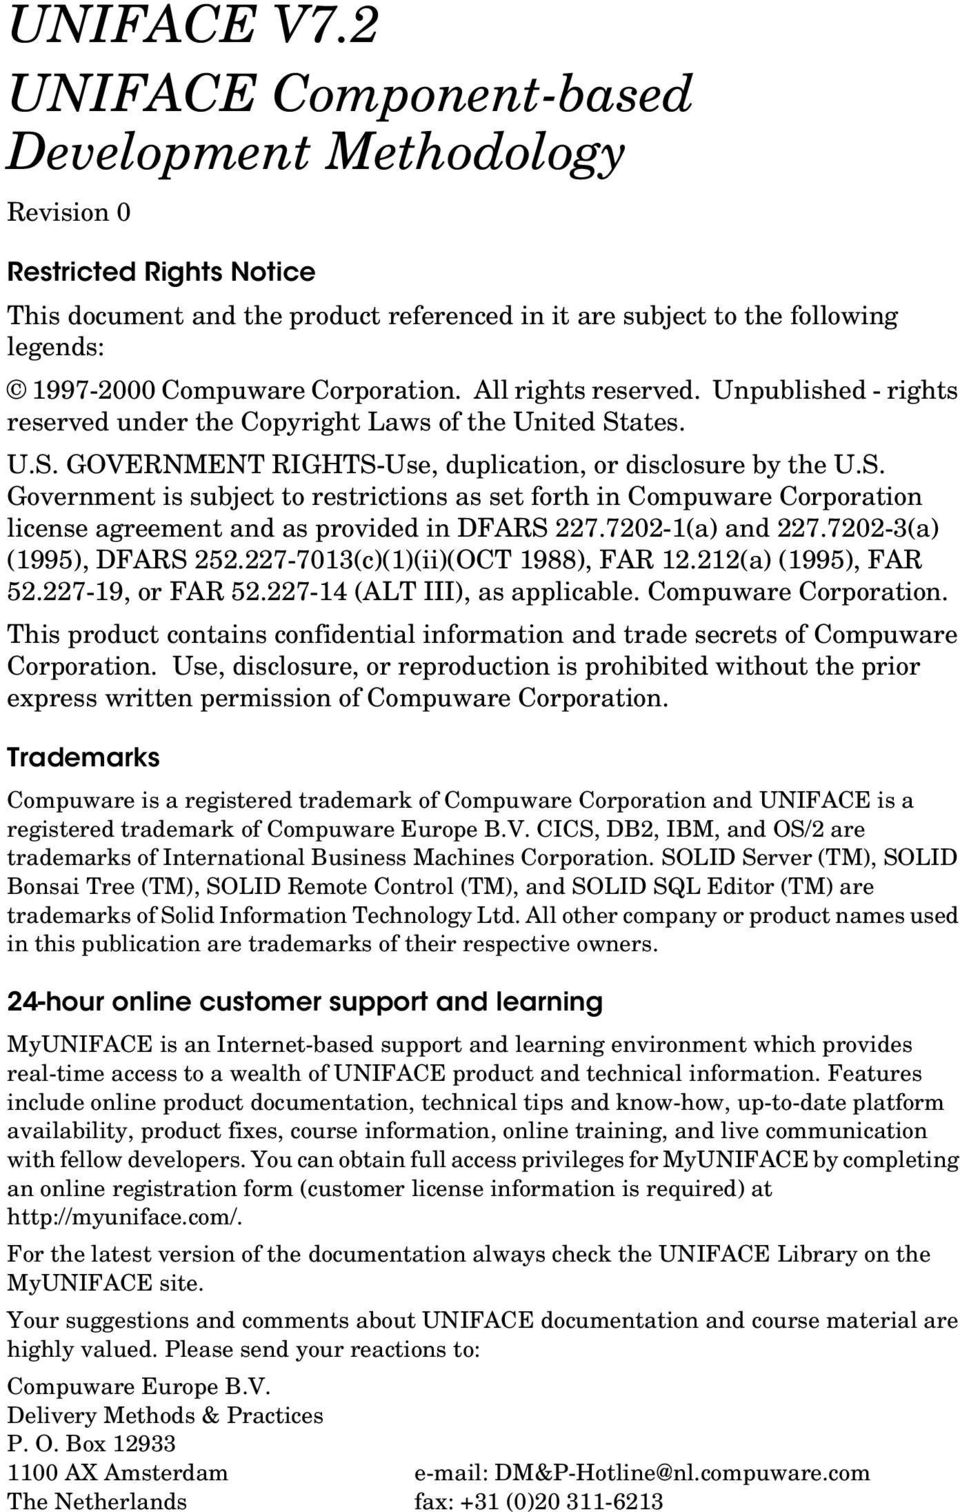 ates. U.S. GOVERNMENT RIGHTS-Use, duplication, or disclosure by the U.S. Government is subject to restrictions as set forth in Compuware Corporation license agreement and as provided in DFARS 227.